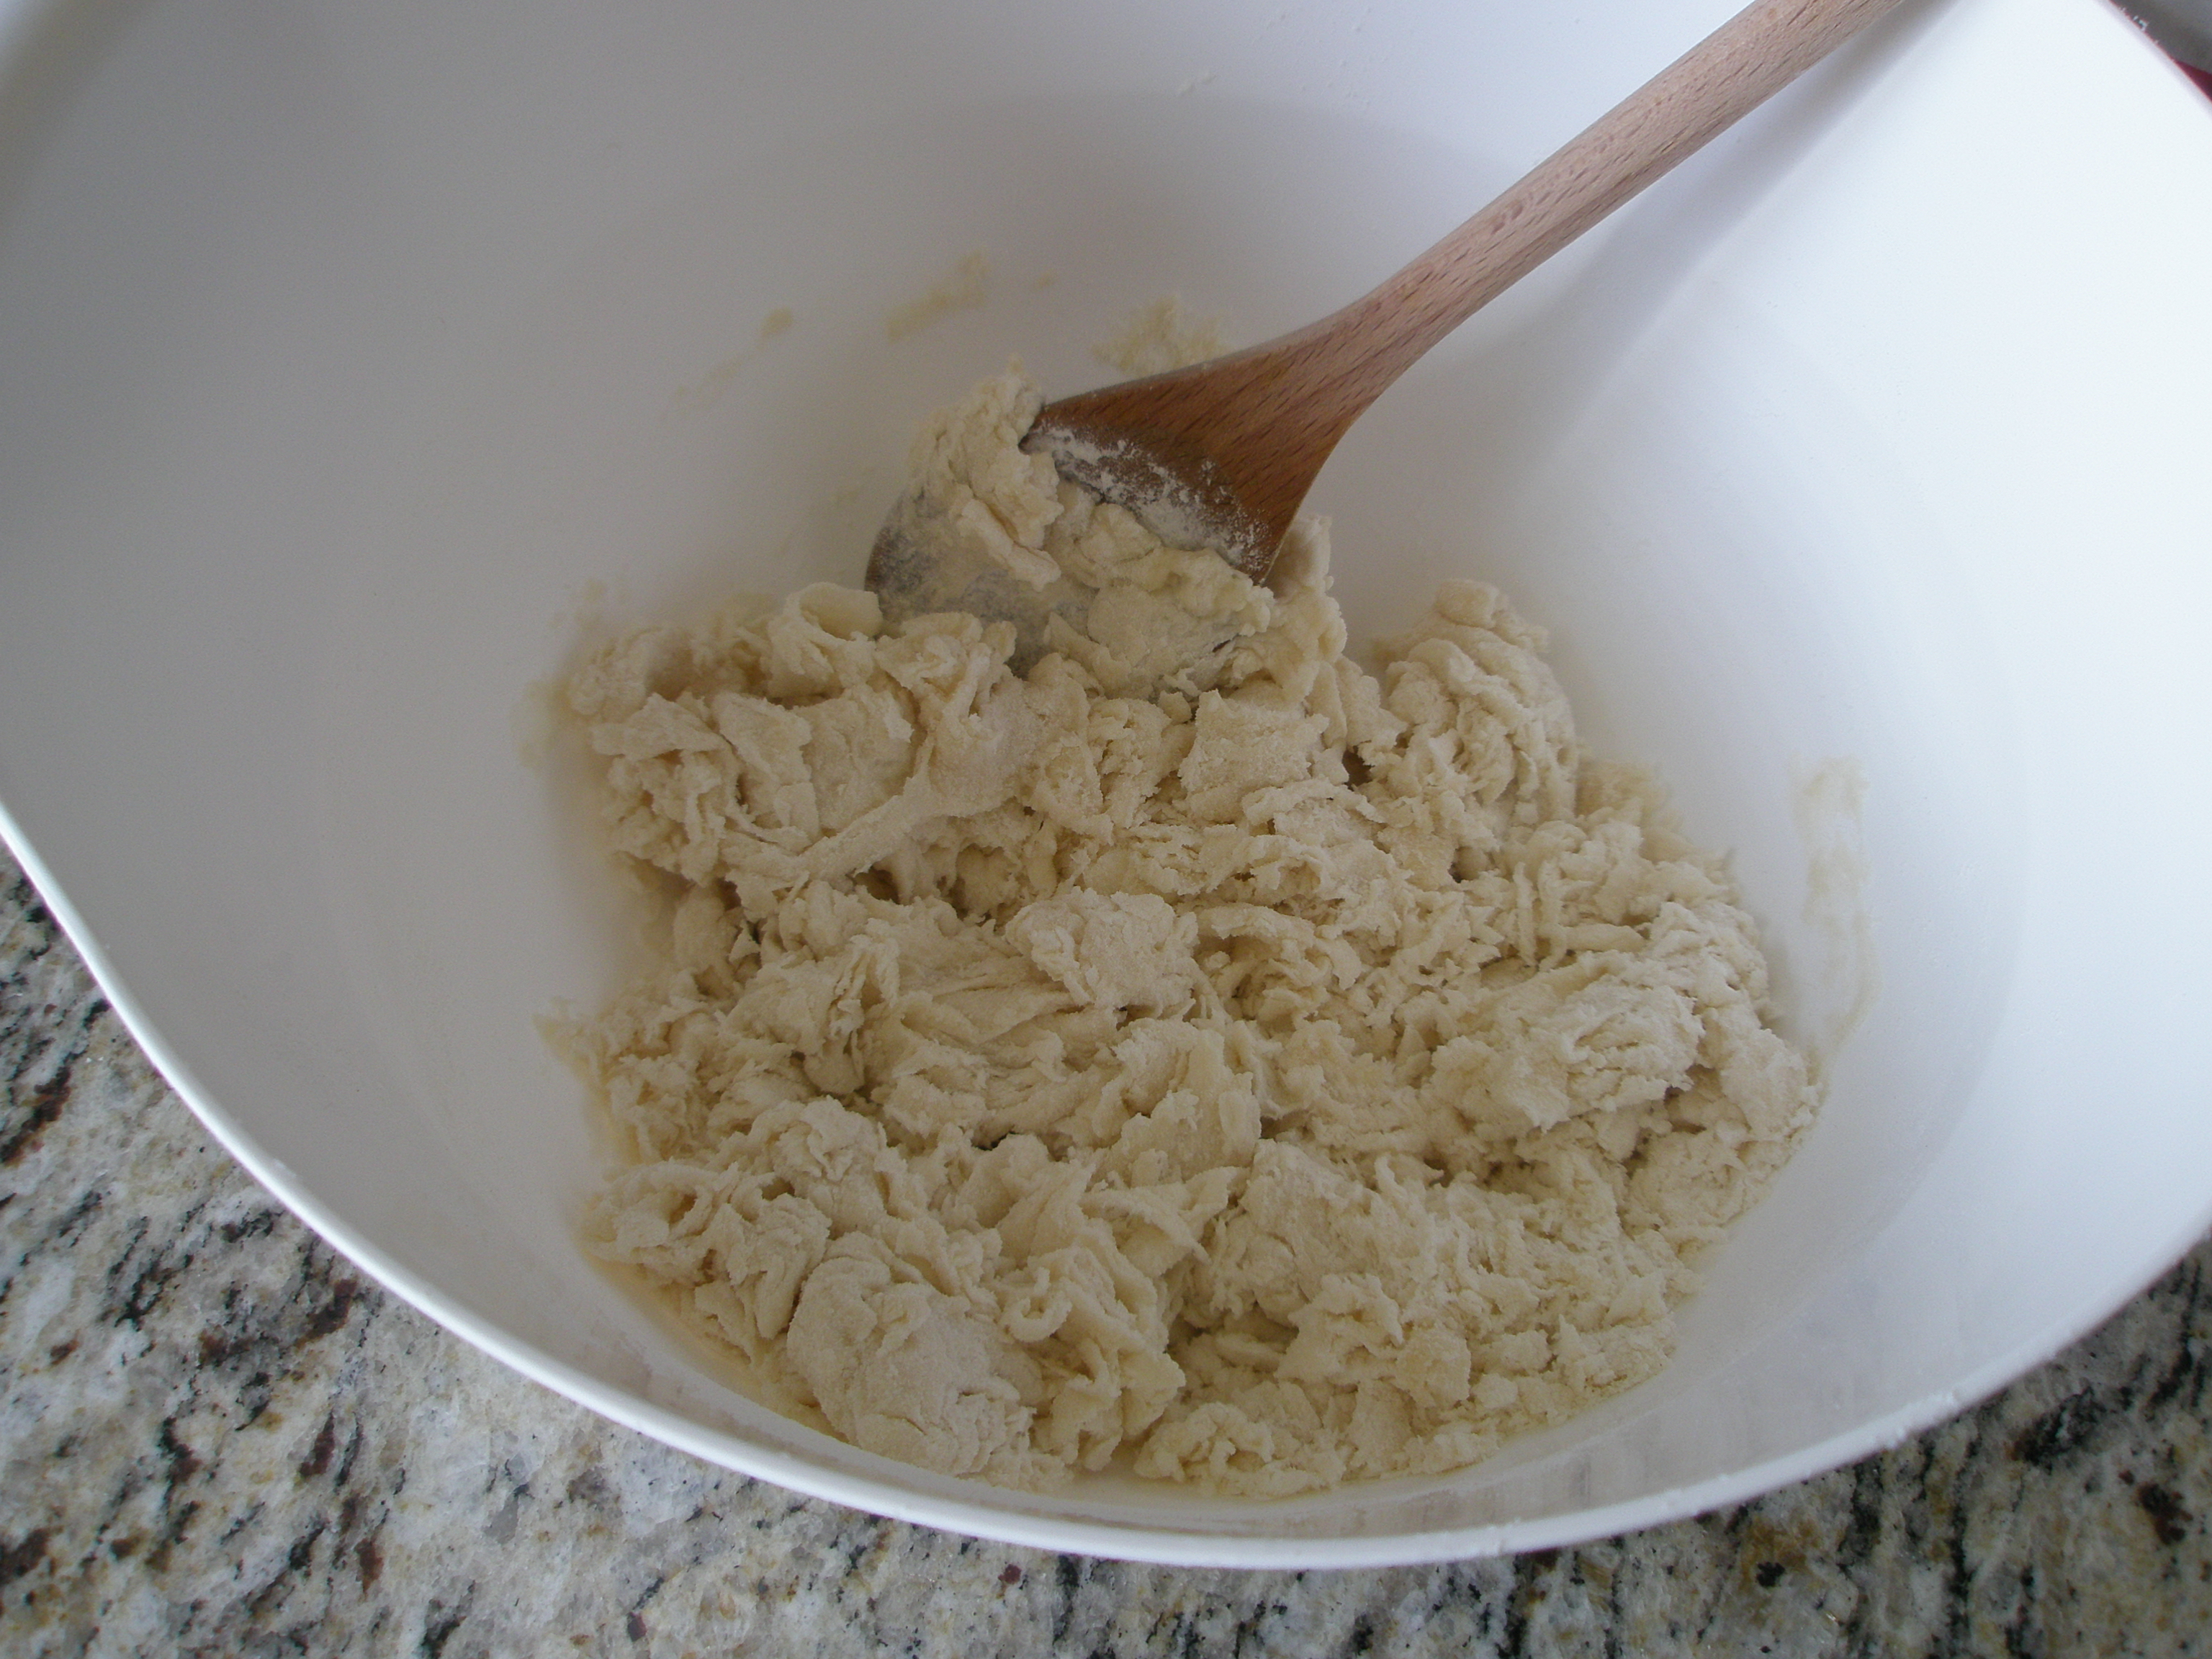 Picture of Making the Crackers - the Dough